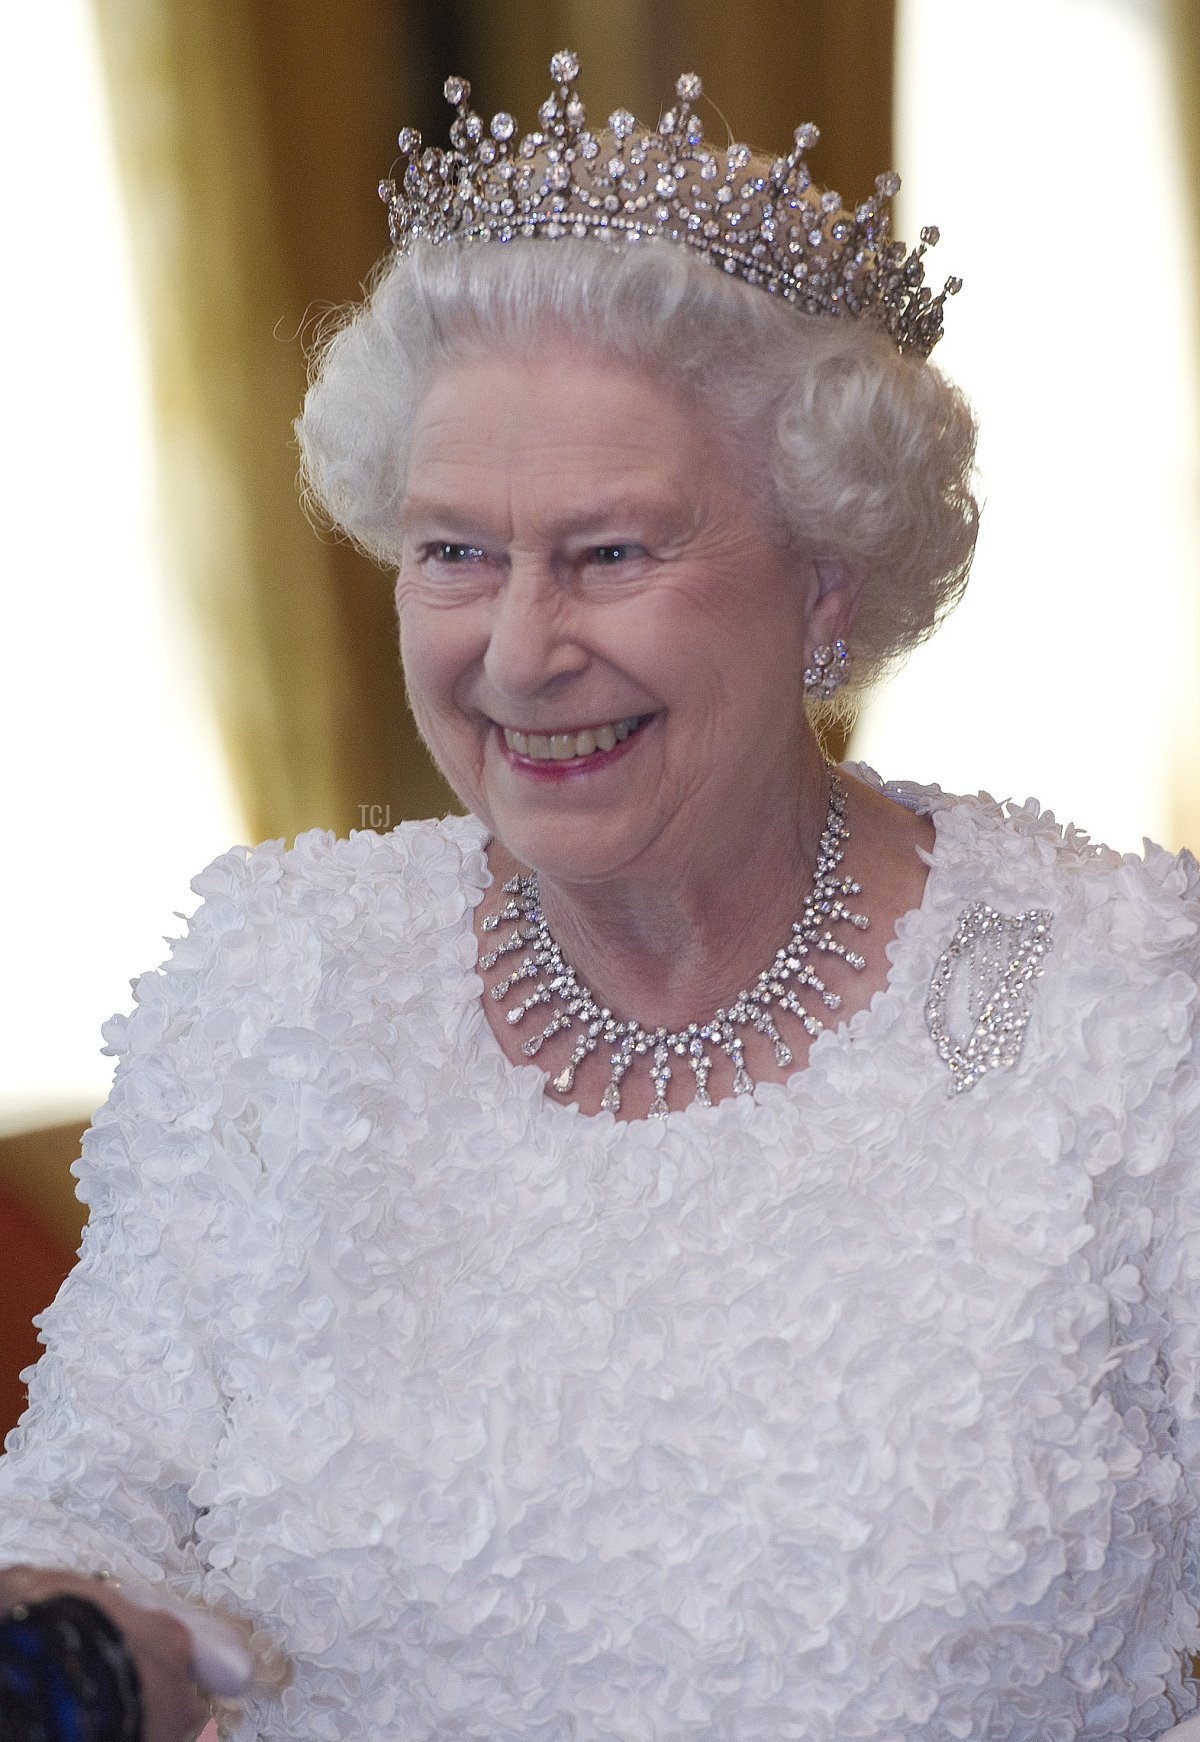 Queen Elizabeth II smiles as she attends the State Dinner on the second day of her State Visit, at Dublin Castle, on May 18, 2011 in Dublin, Ireland